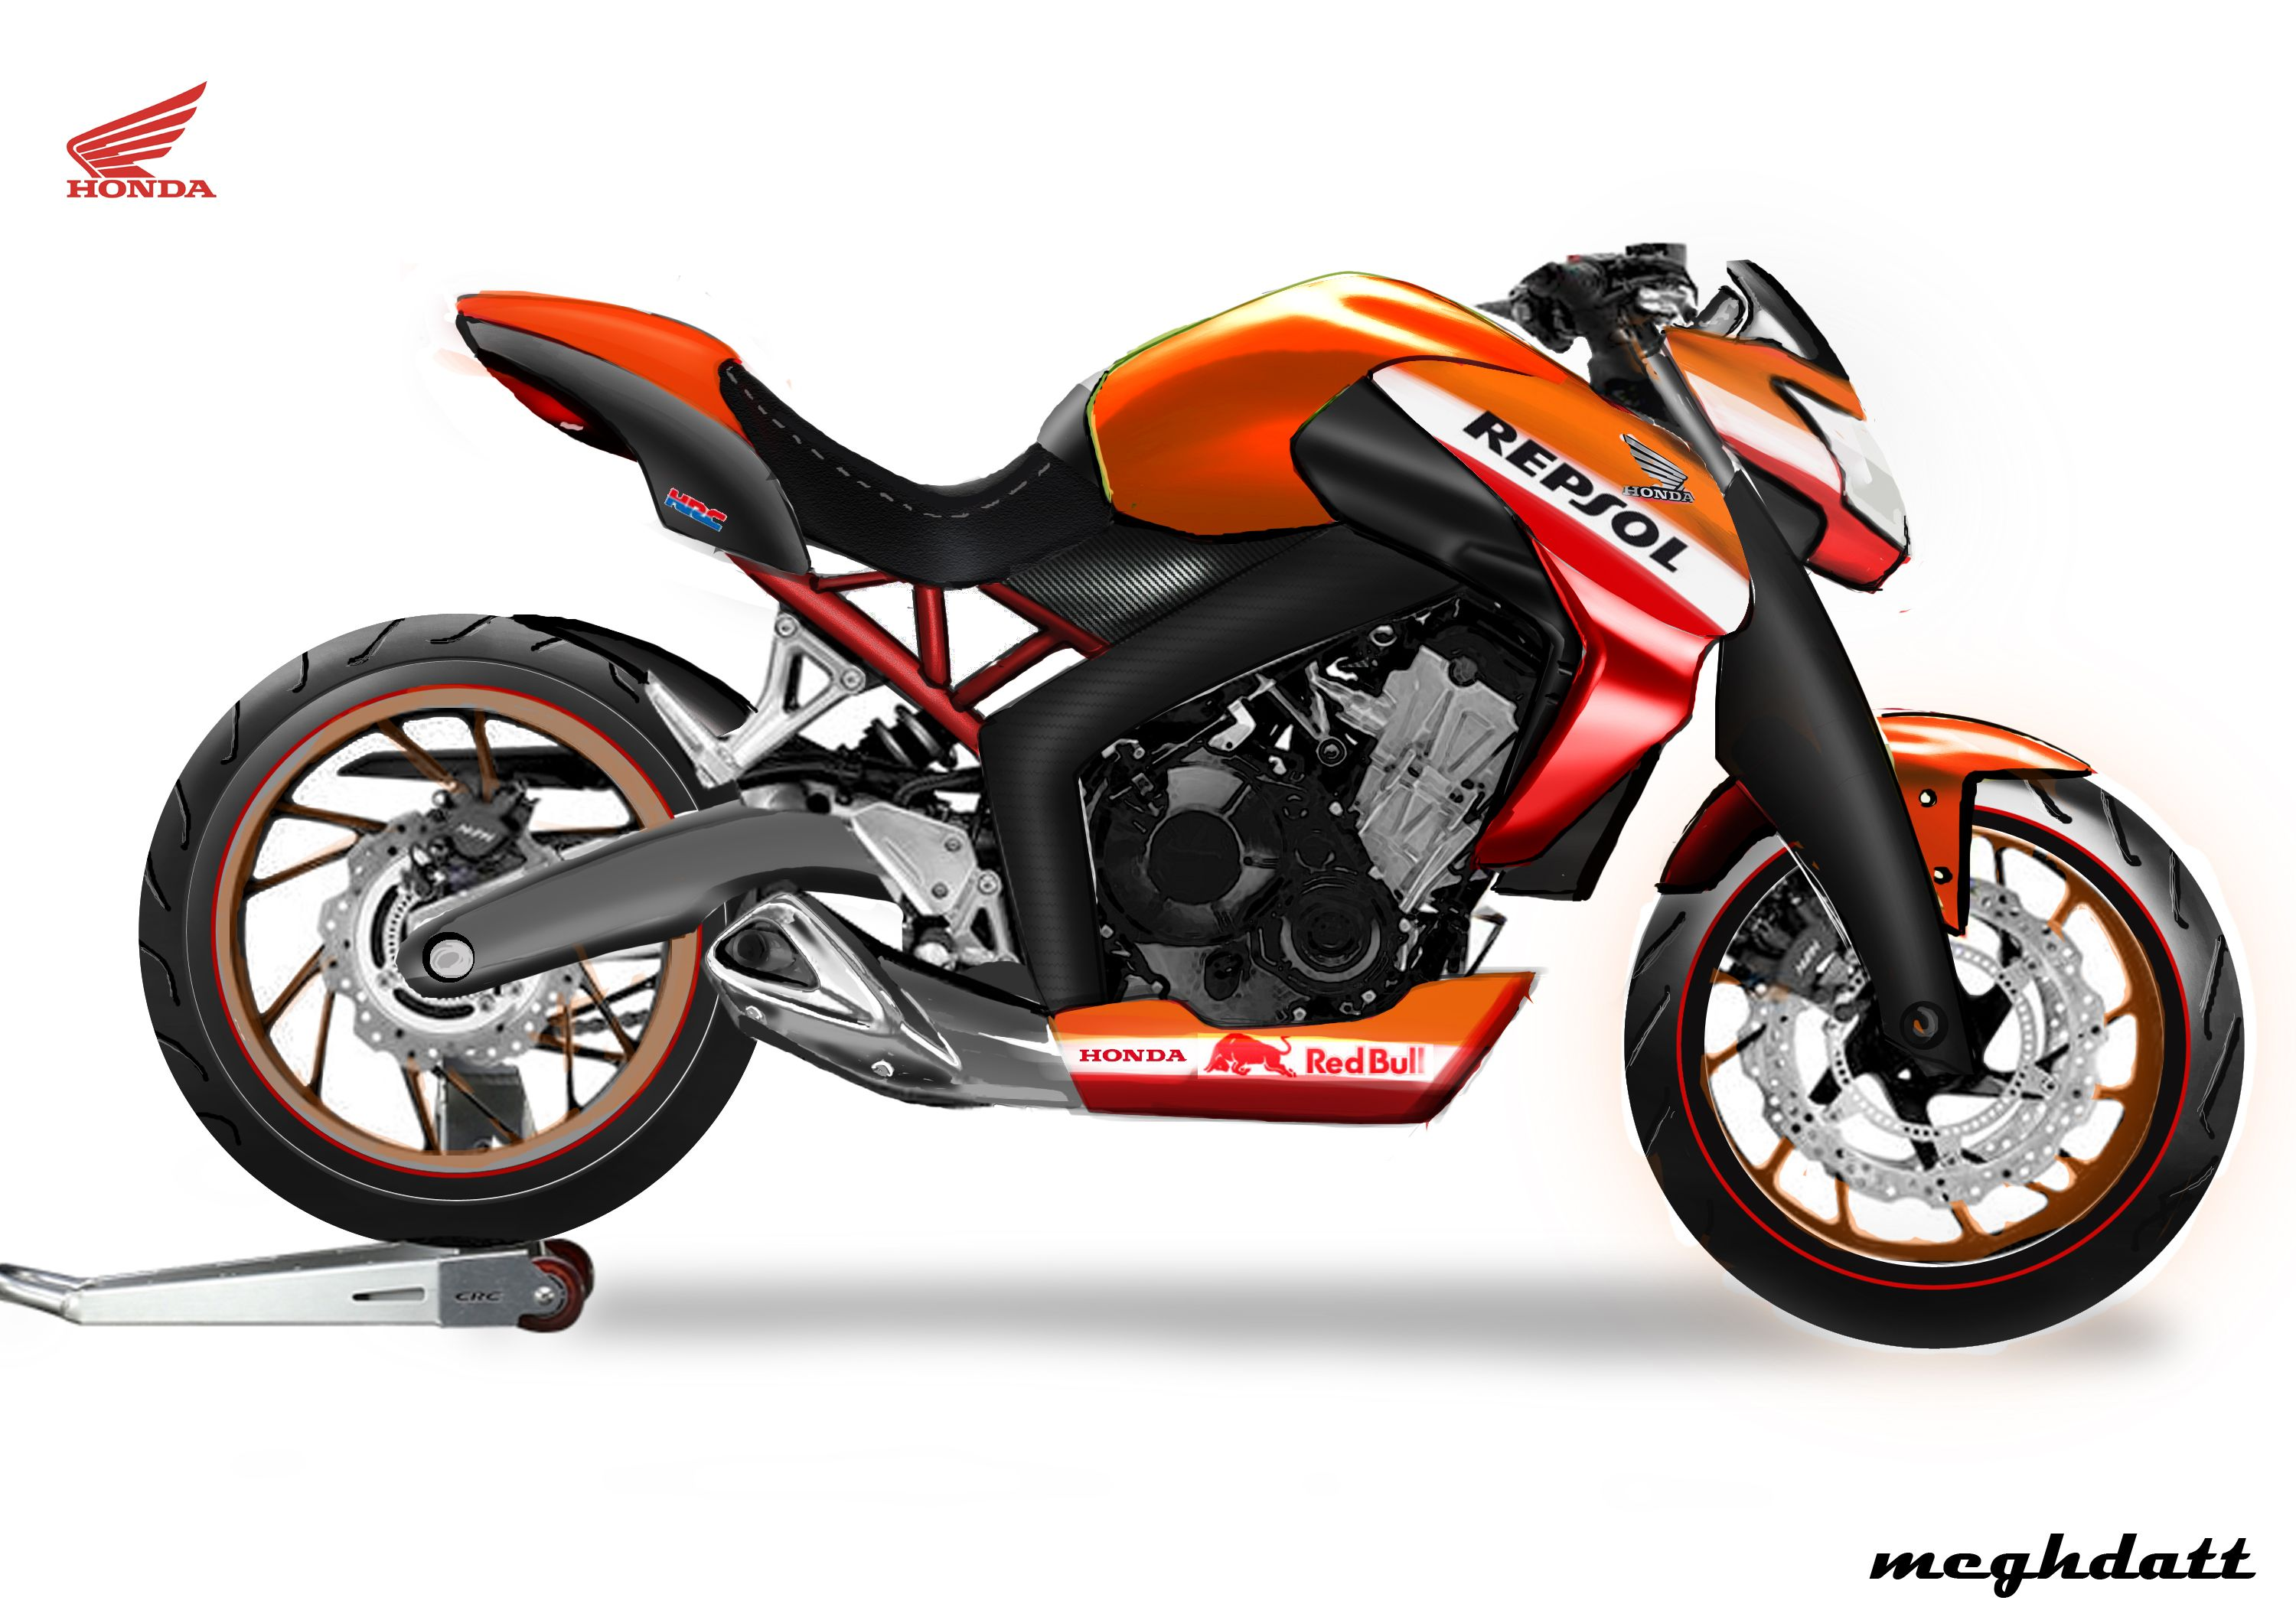 honda street sport naked bike repsol edition render. Black Bedroom Furniture Sets. Home Design Ideas